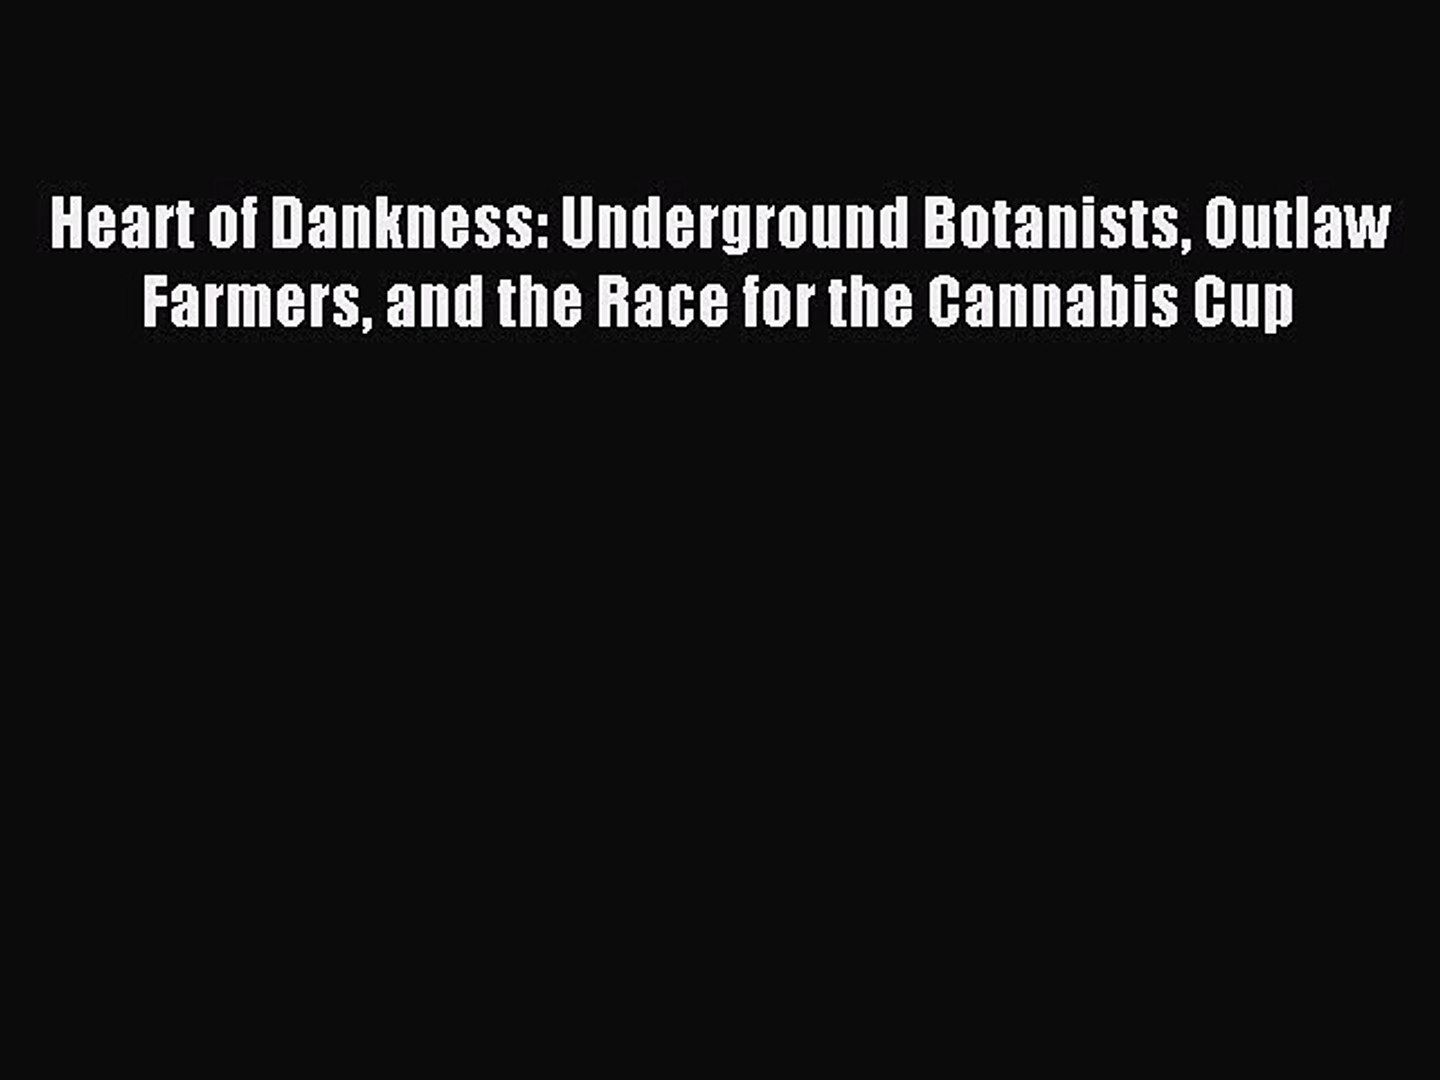 Read Heart of Dankness: Underground Botanists Outlaw Farmers and the Race for the Cannabis